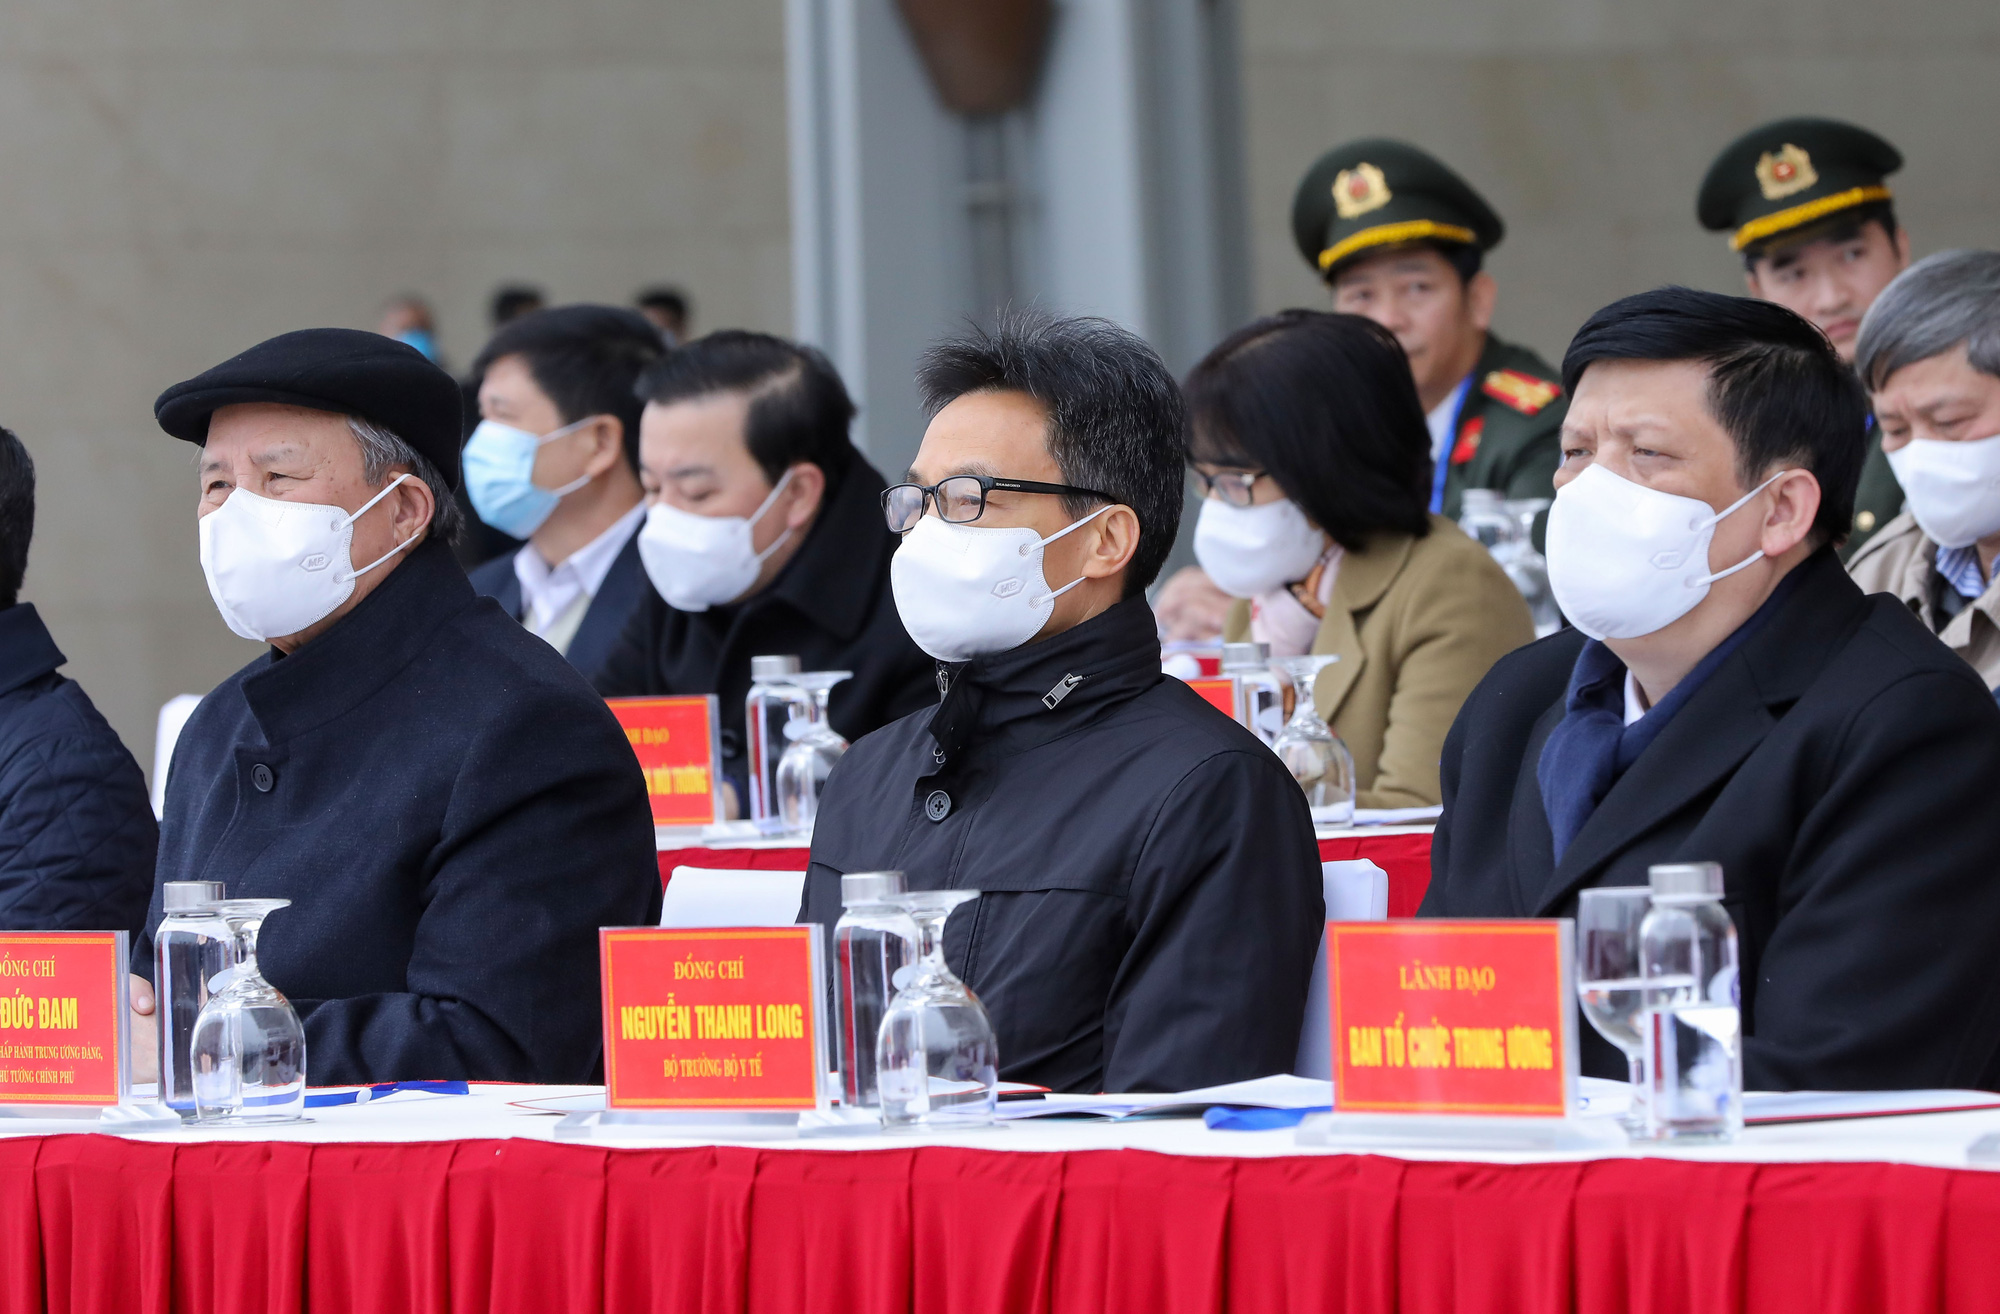 From left: Tran Quoc Vuong, Politburo member and head of the congress's organizing sub-committee; Deputy Prime Minister Vu Duc Dam; and Minister of Health Nguyen Thanh Long are pictured at the exercise in Hanoi, January 10, 2021. Photo: Viet Dung / Tuoi Tre